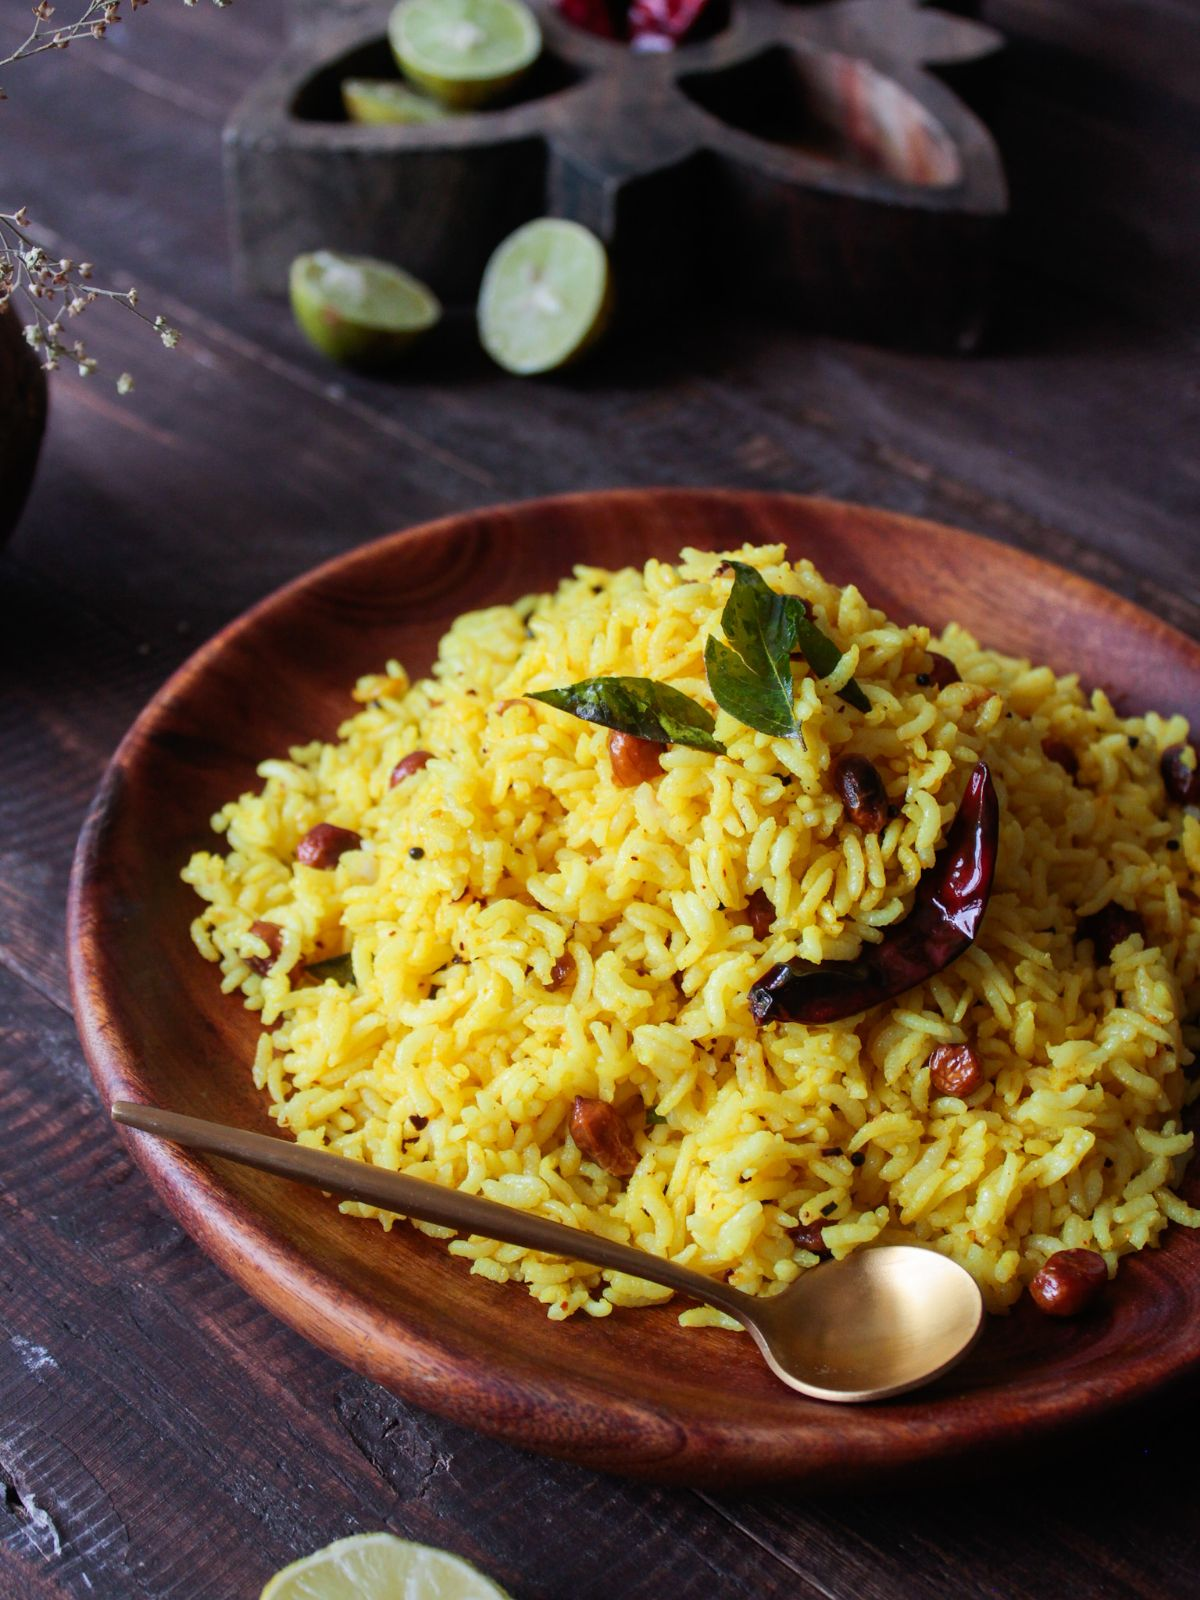 Lemon rice in wooden bowl with gold spoon on wood table